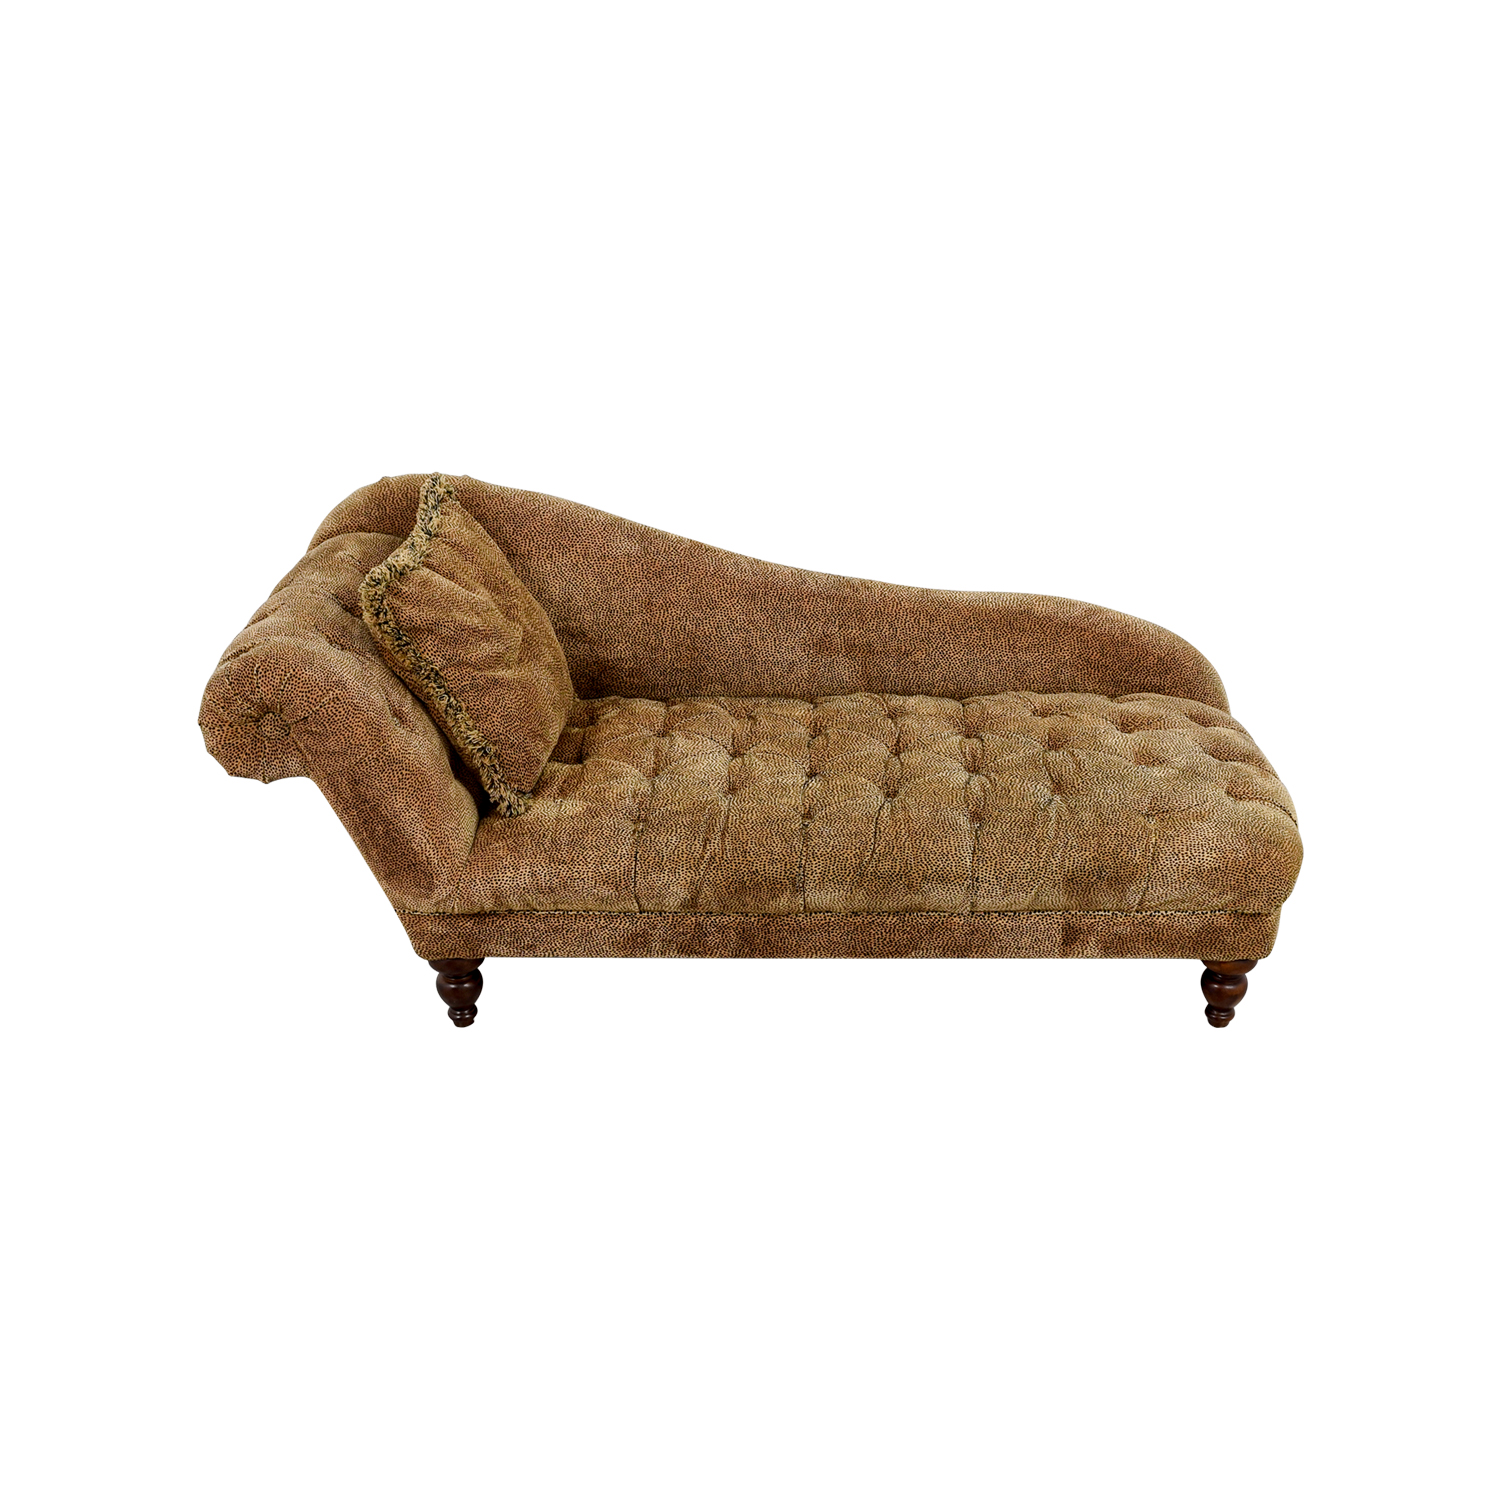 Domain Home Furnishings Leopard Chaise Lounge sale